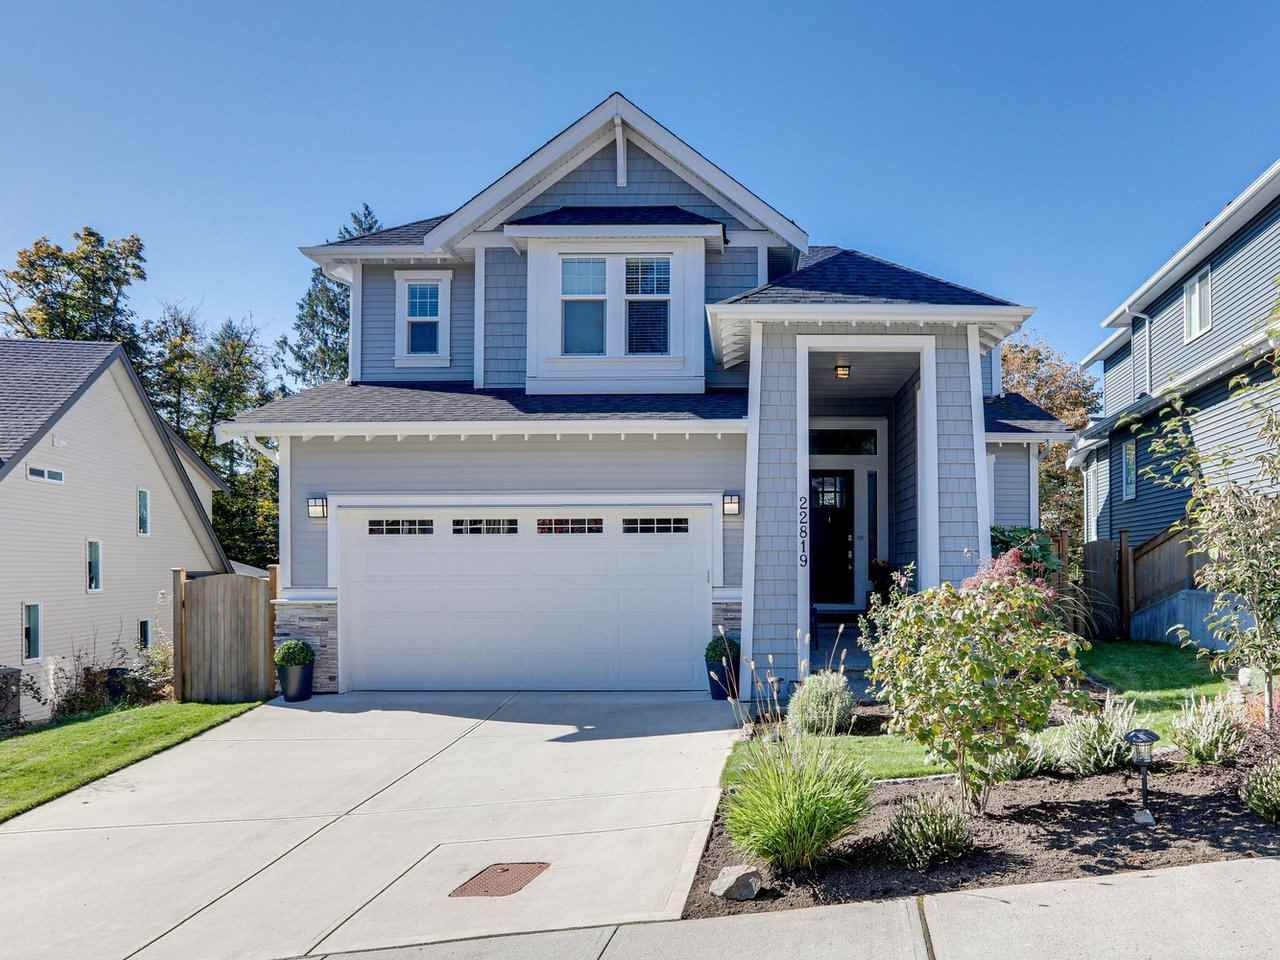 Quiet, cul-de-sac location in Nelson Peak up in Silver Valley. Greenbelt back & side, fenced southfacing yard. Quality build with too many to list upgraded features....